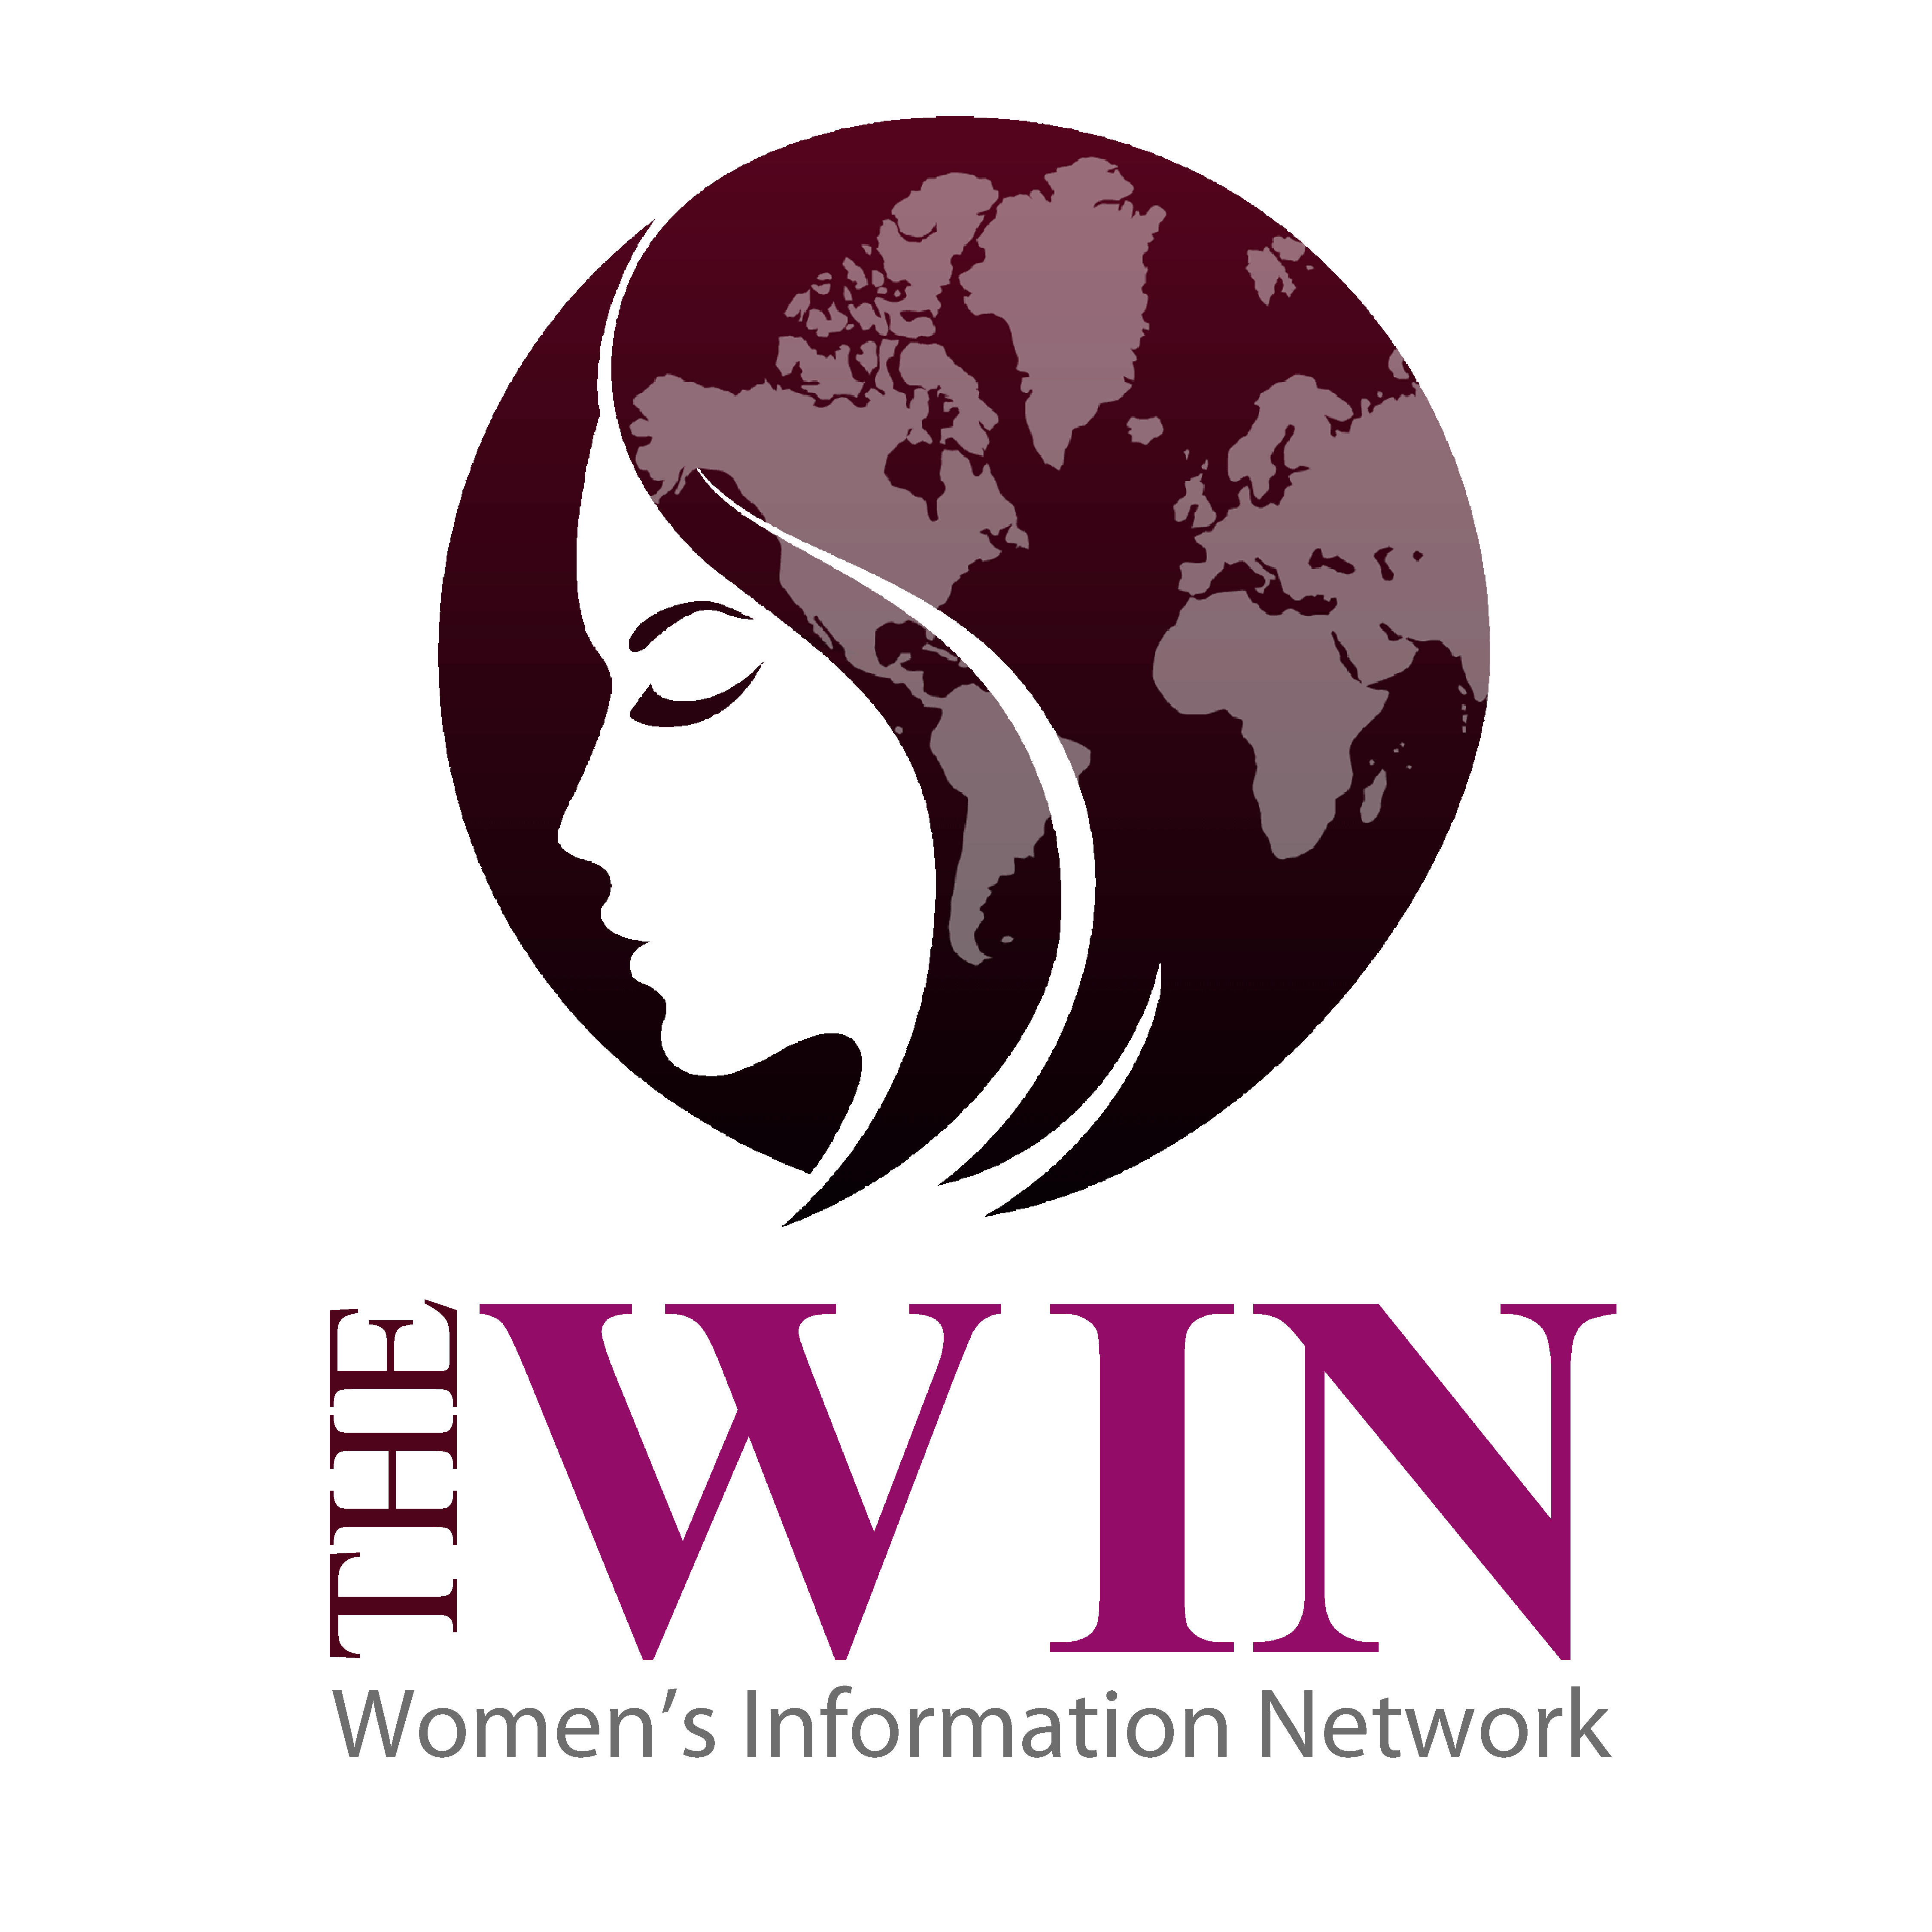 The Women's Information Network